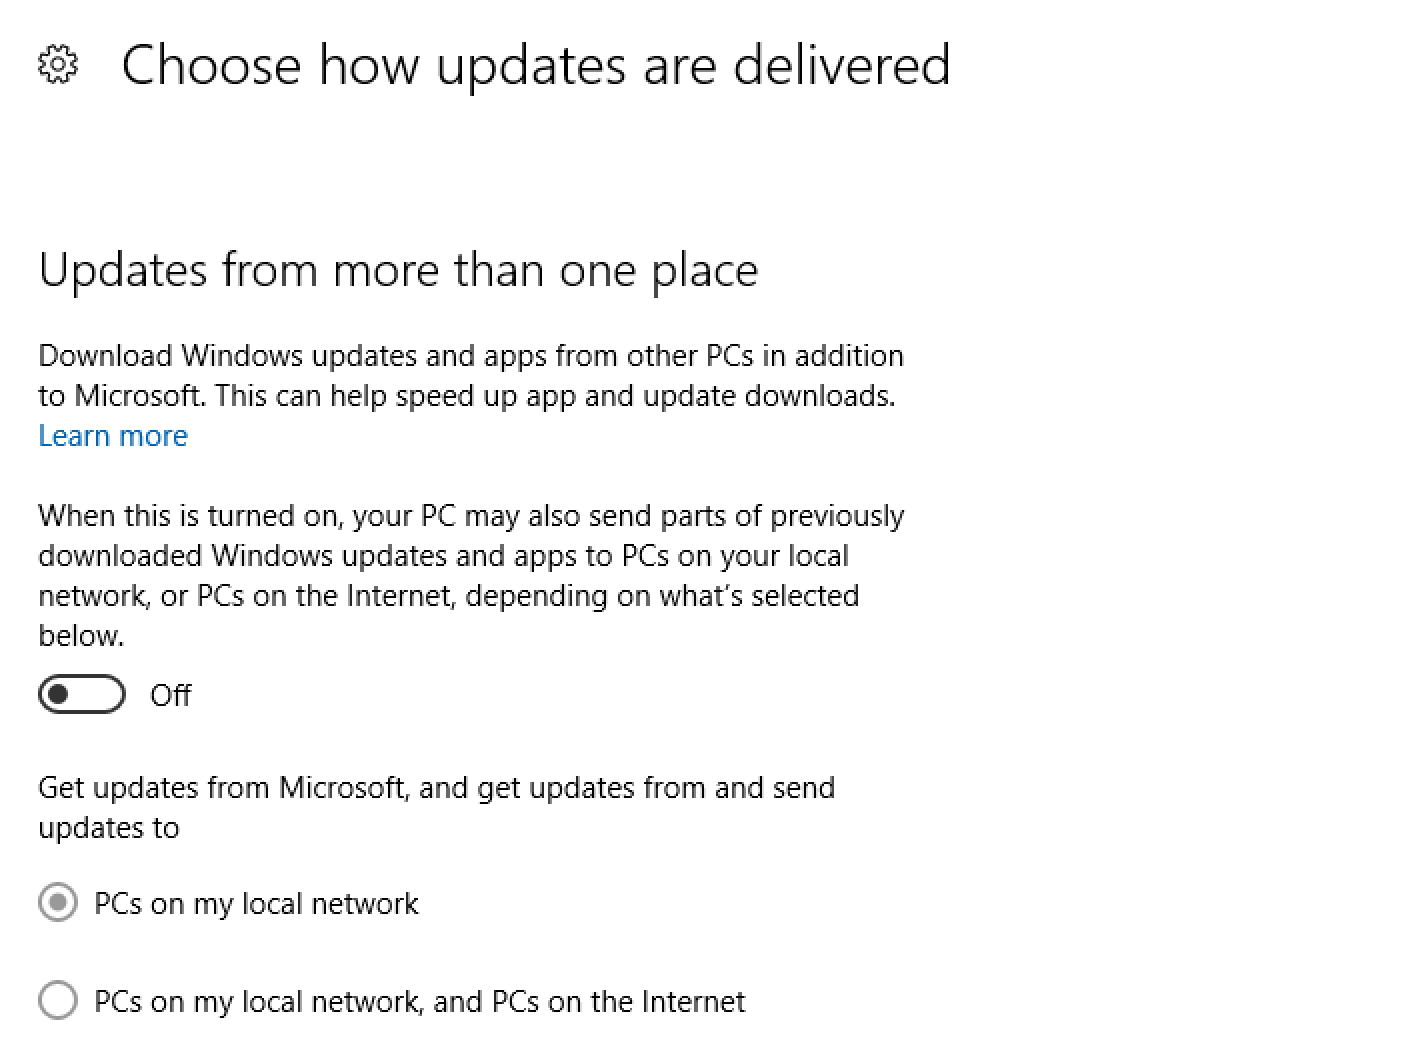 Stop Windows 10 Interrupting You For Updates? - Ask Dave Taylor